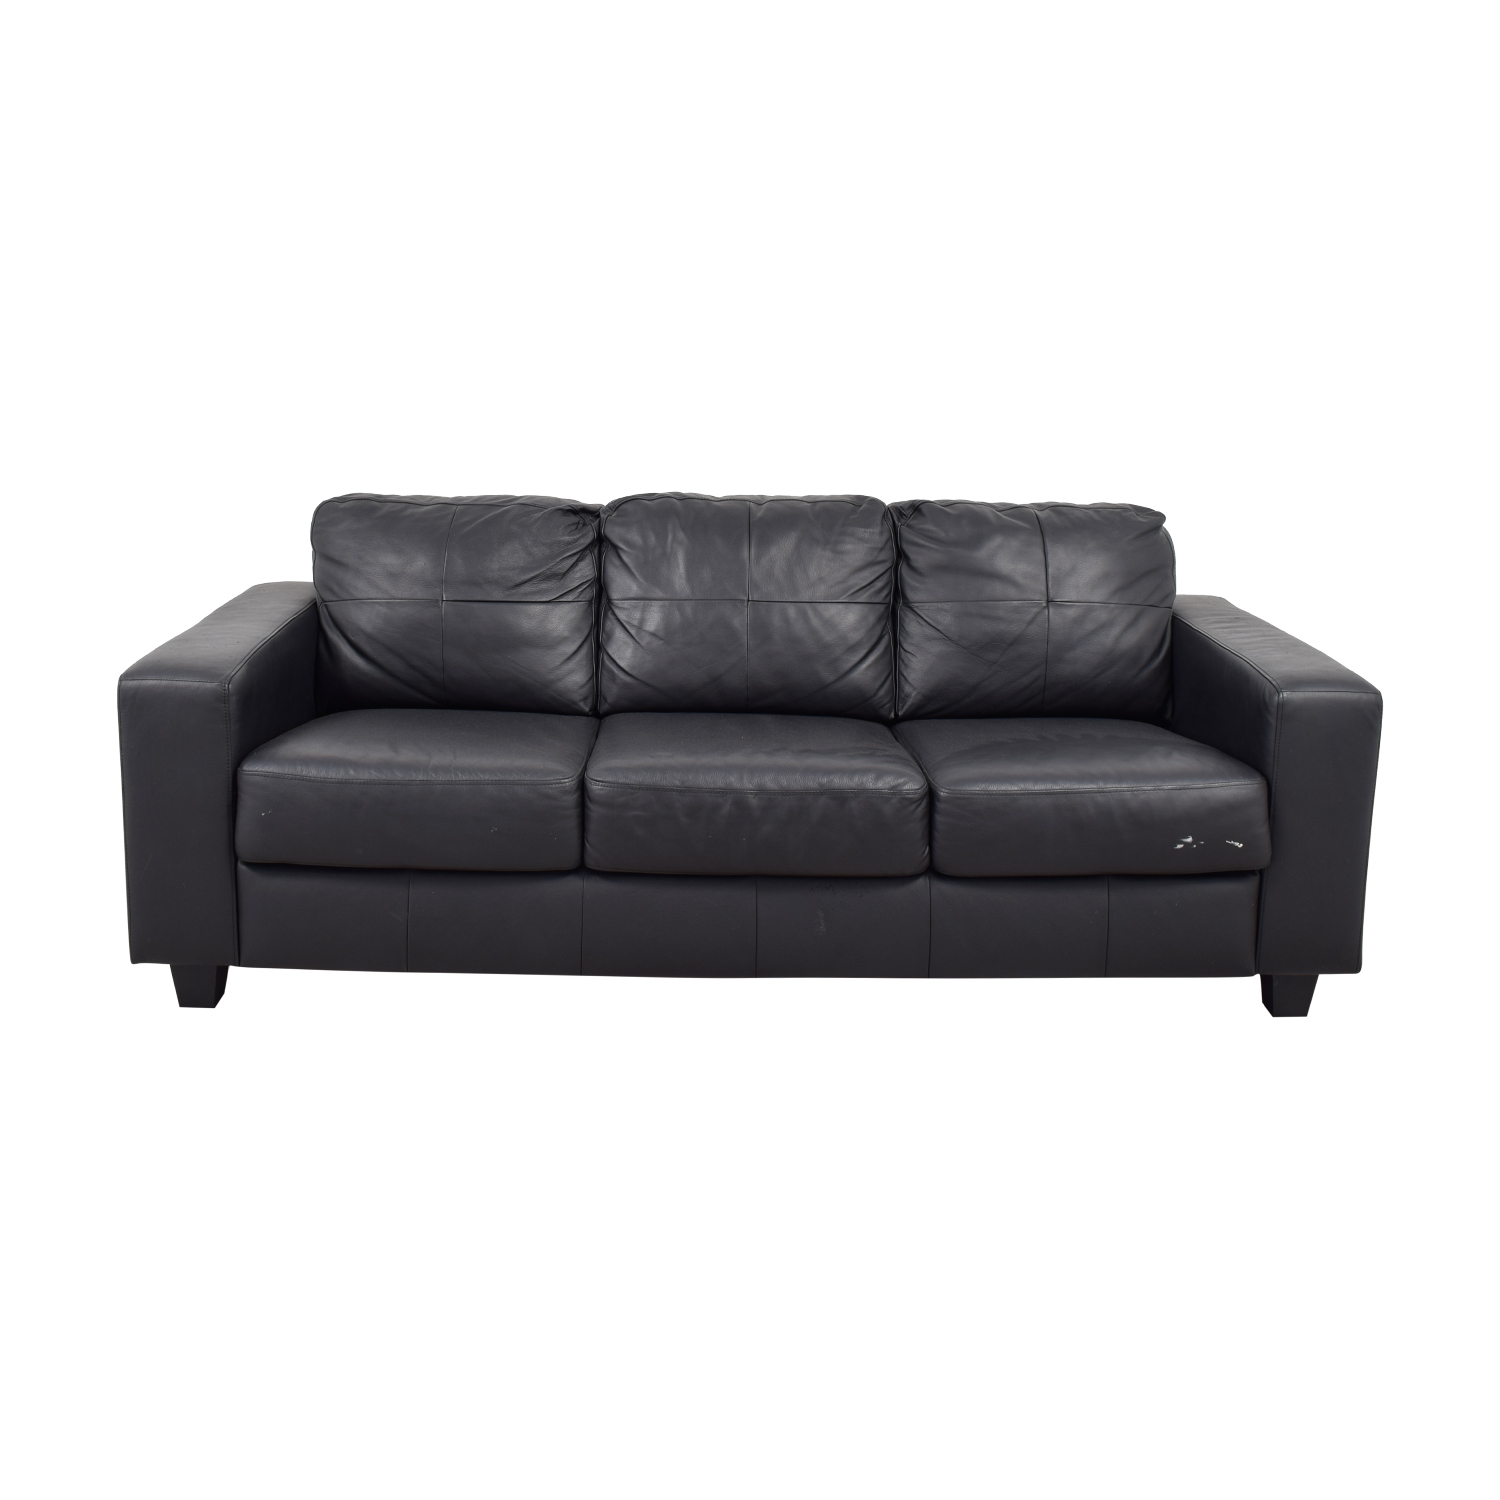 44 Off Ikea Ikea Skogaby Black Leather Sofa Sofas